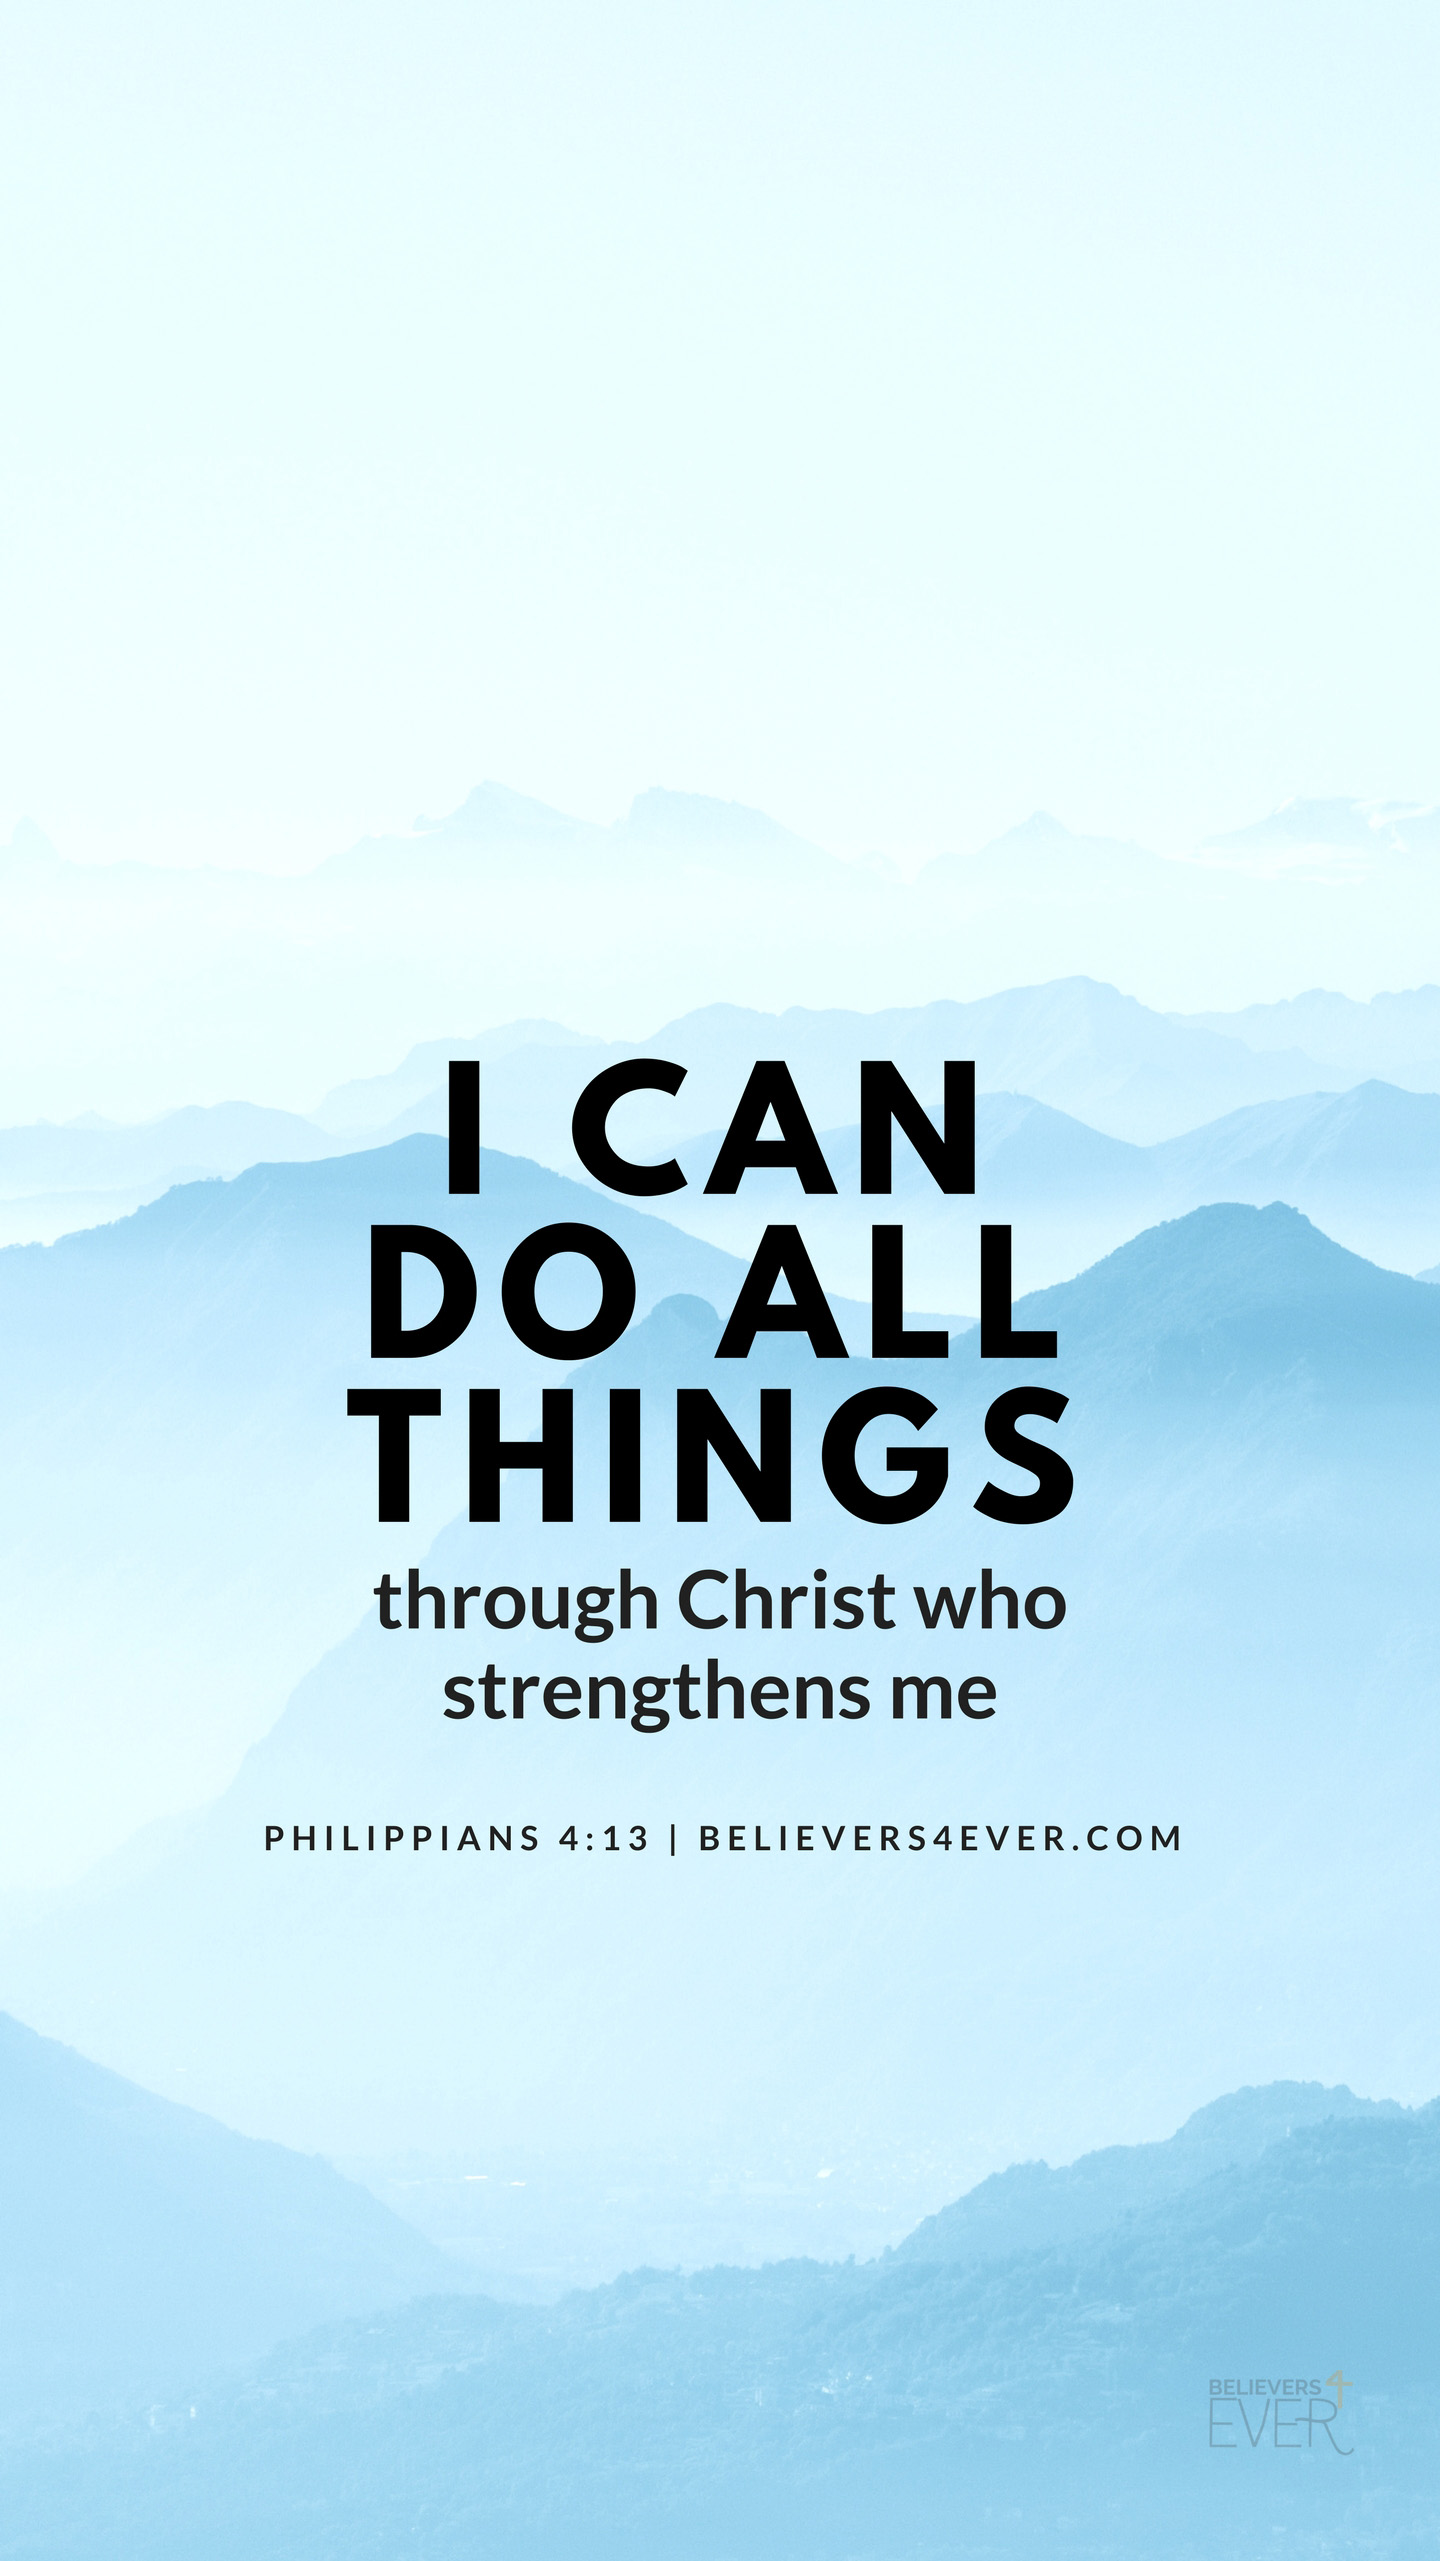 I Can Do All Things Believers4evercom